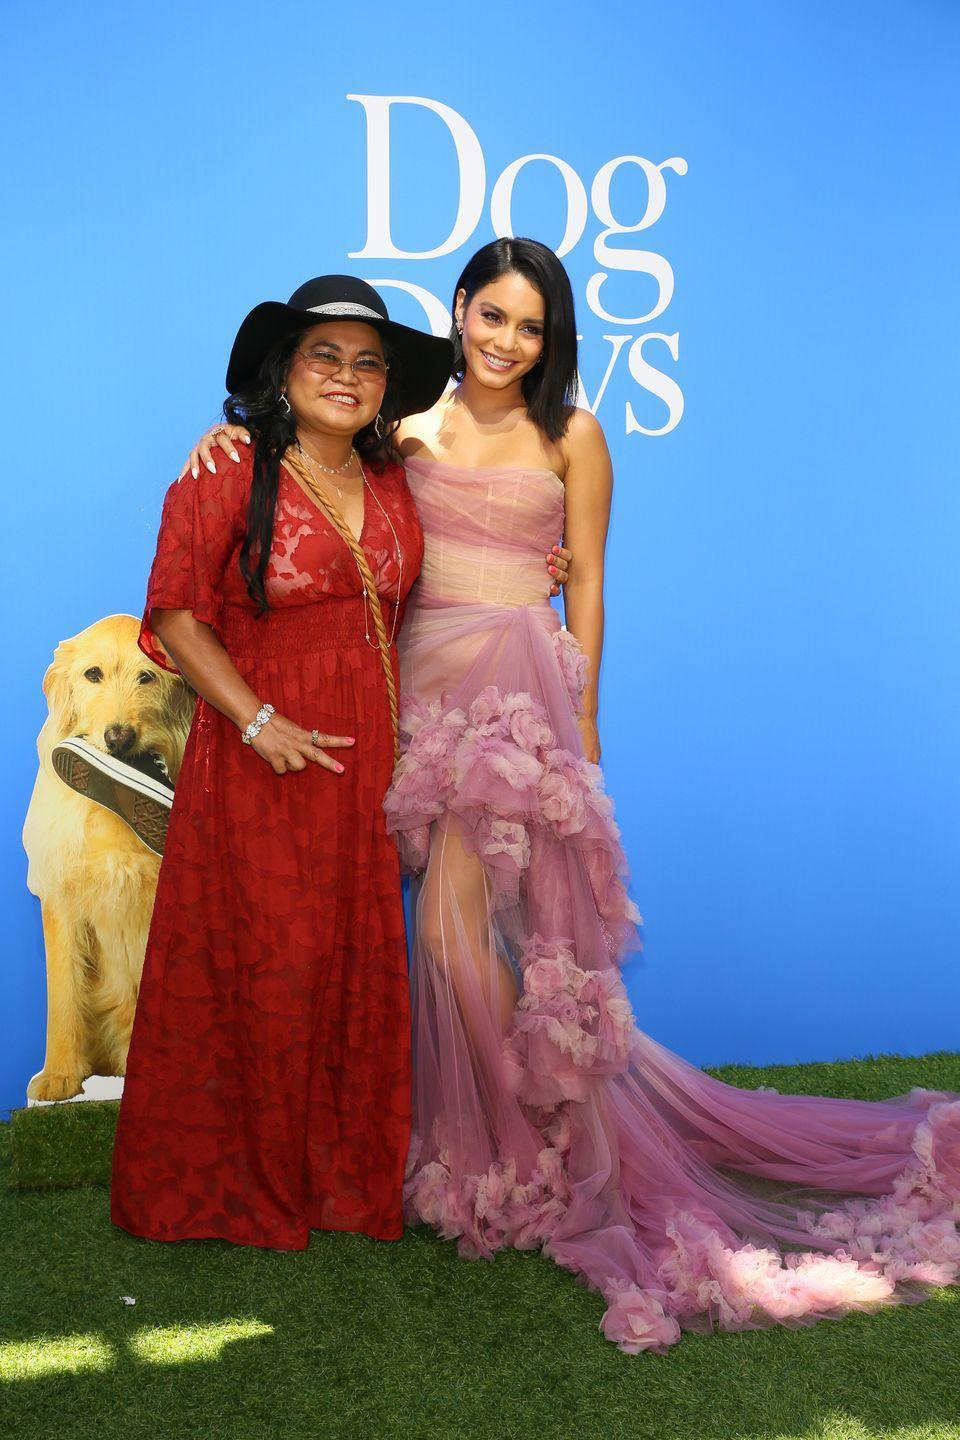 "<p>""<a href=""https://www.allure.com/gallery/vanessa-hudgens"" rel=""nofollow noopener"" target=""_blank"" data-ylk=""slk:I love her"" class=""link rapid-noclick-resp"">I love her </a>to death. She's the sweetest, happiest woman I've ever met, the most free-spirited, delightful person, and I aspire to be just like her. The older I get, the more I find myself like my mom. She just has the best outlook.""</p>"